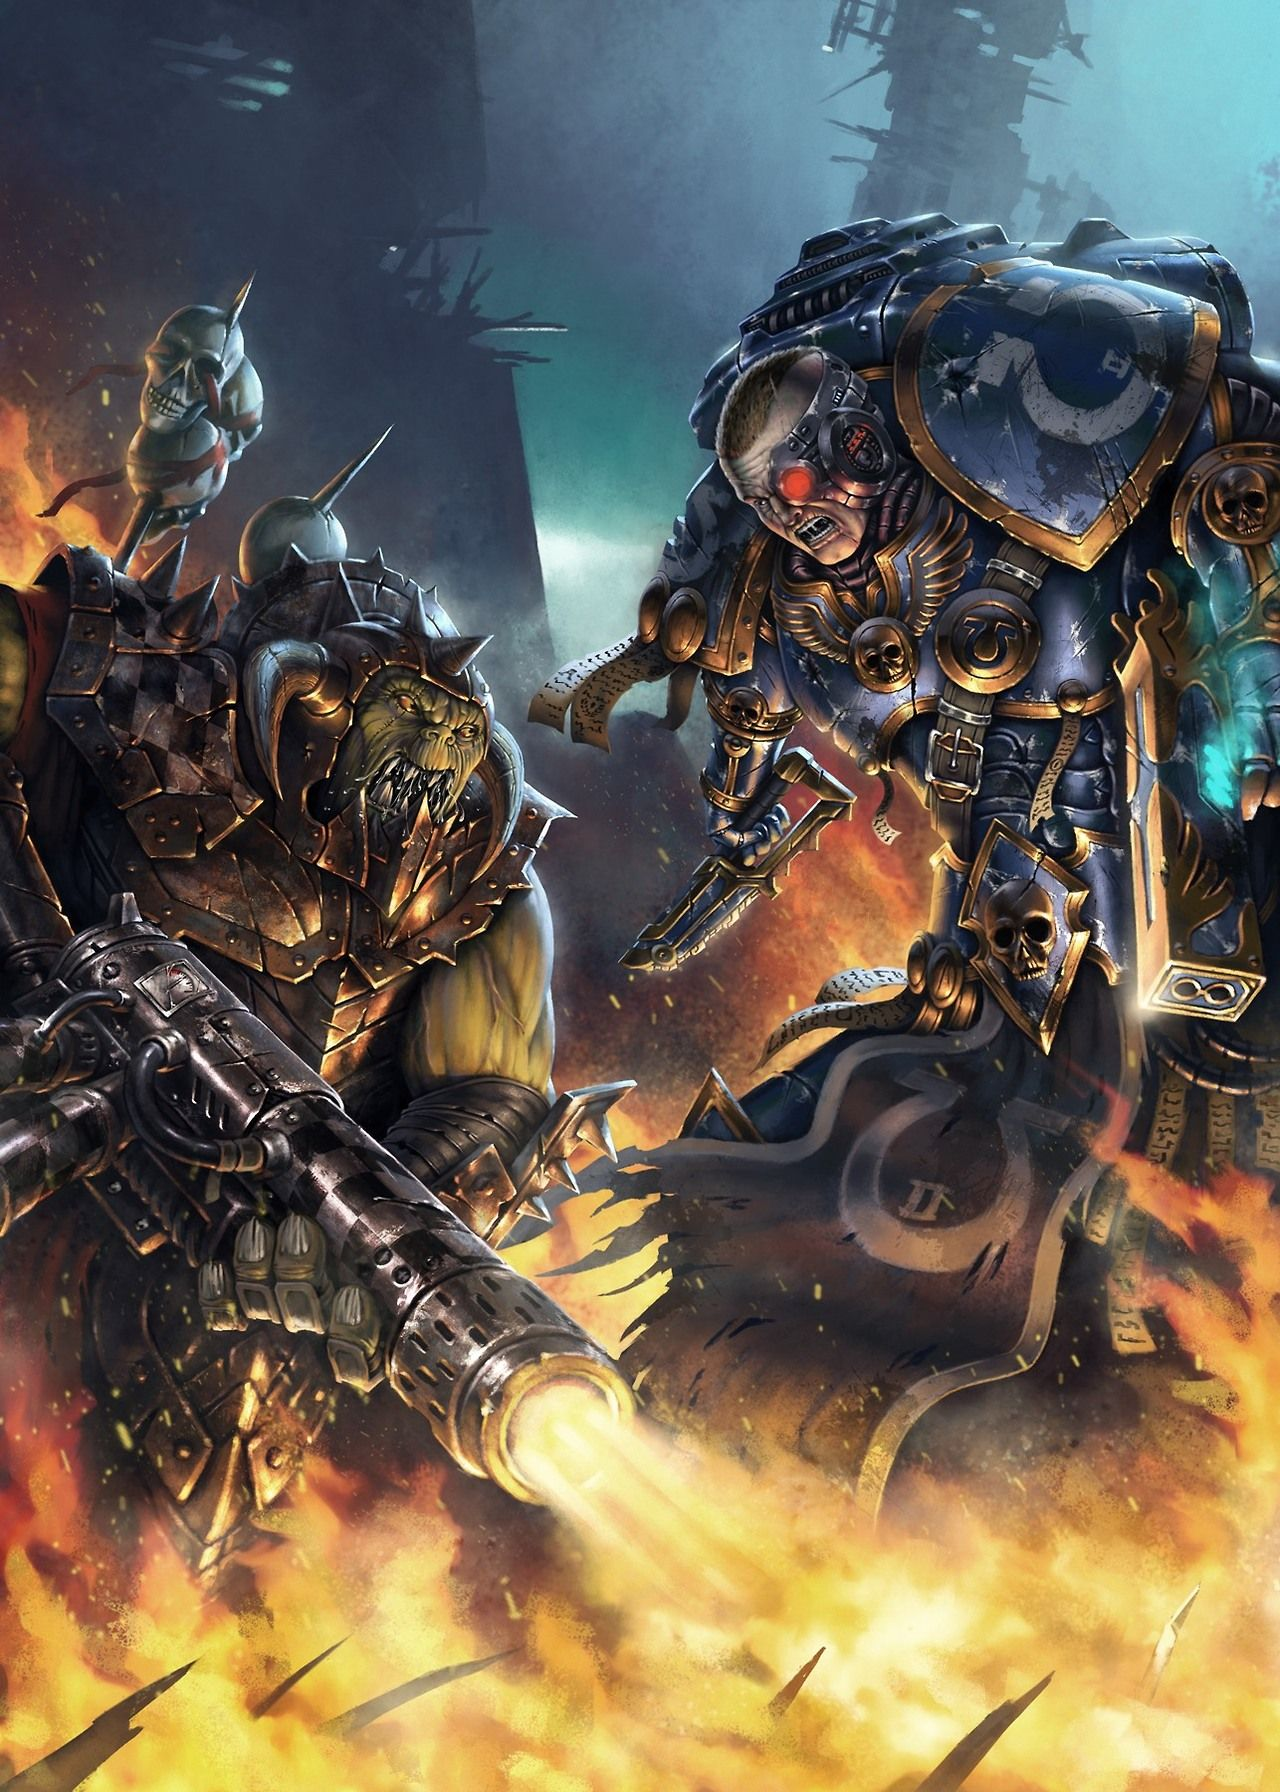 Spassundspiele Ultramarine Vs Ork Fan Art Warhammer 40k By Adam Isailovic Brutal